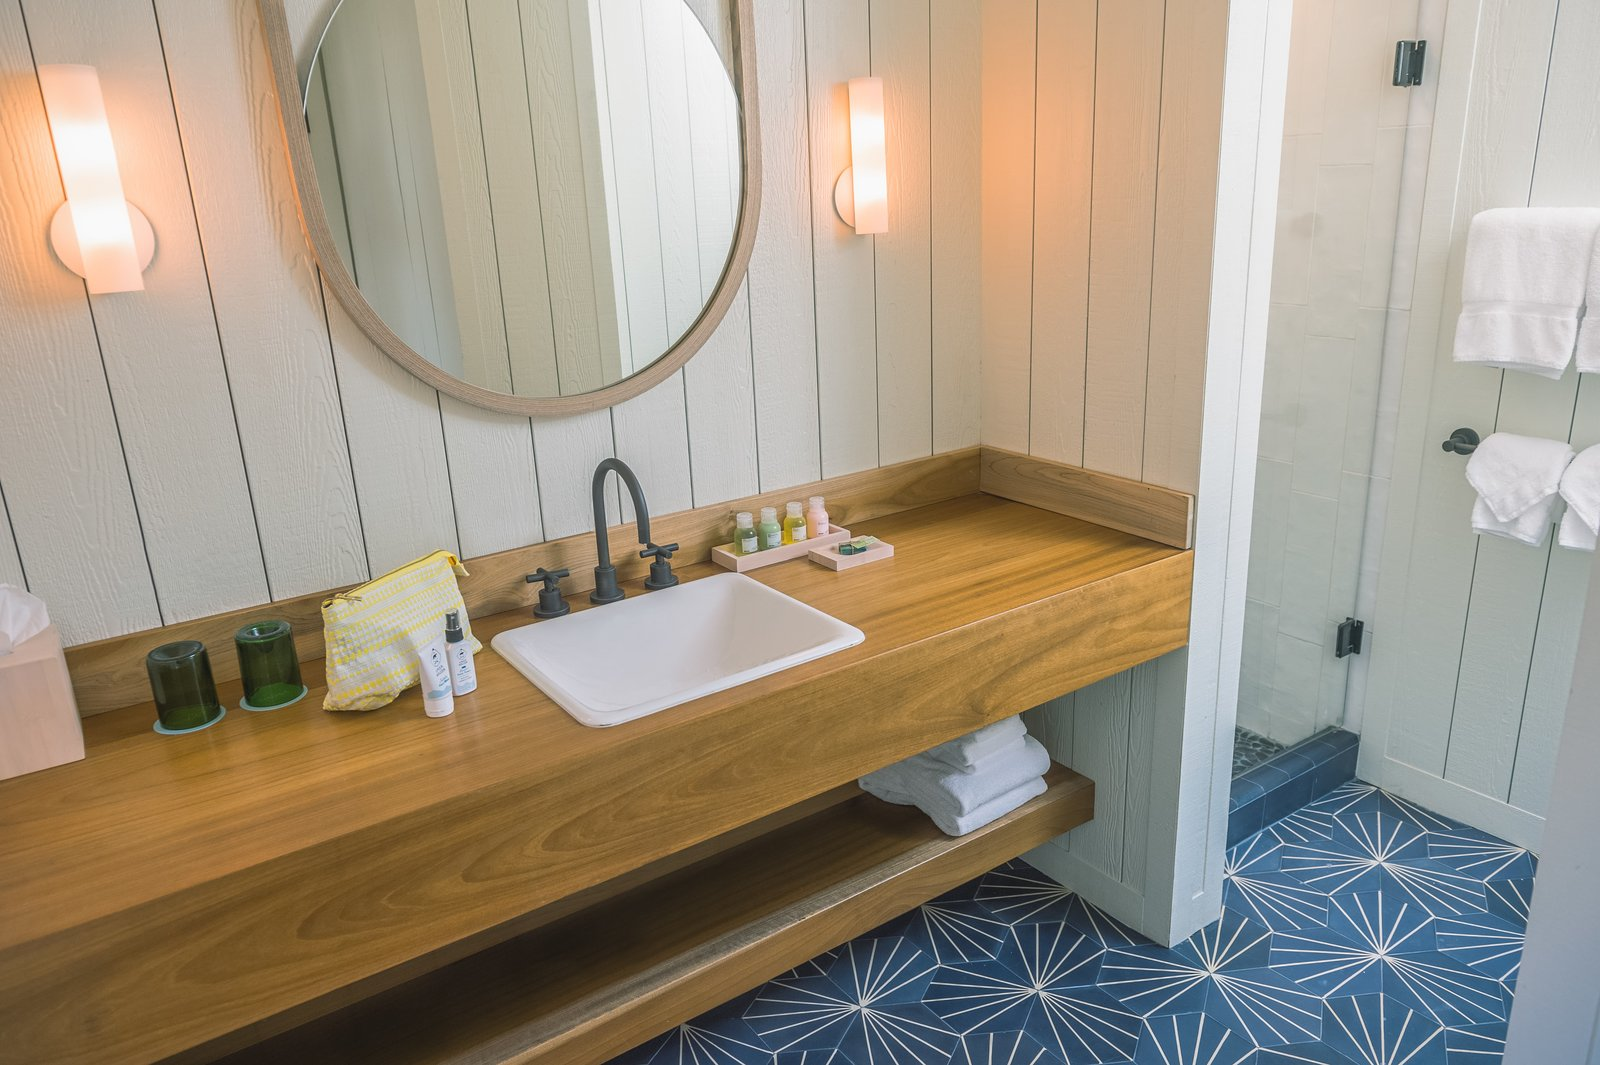 The bathrooms are filled with North Shore toiletries and custom ceramic floor tiles. Andrew Mau, who designed the shaka wallpaper in the restaurant, also created the Moana Vanity Mirrors.